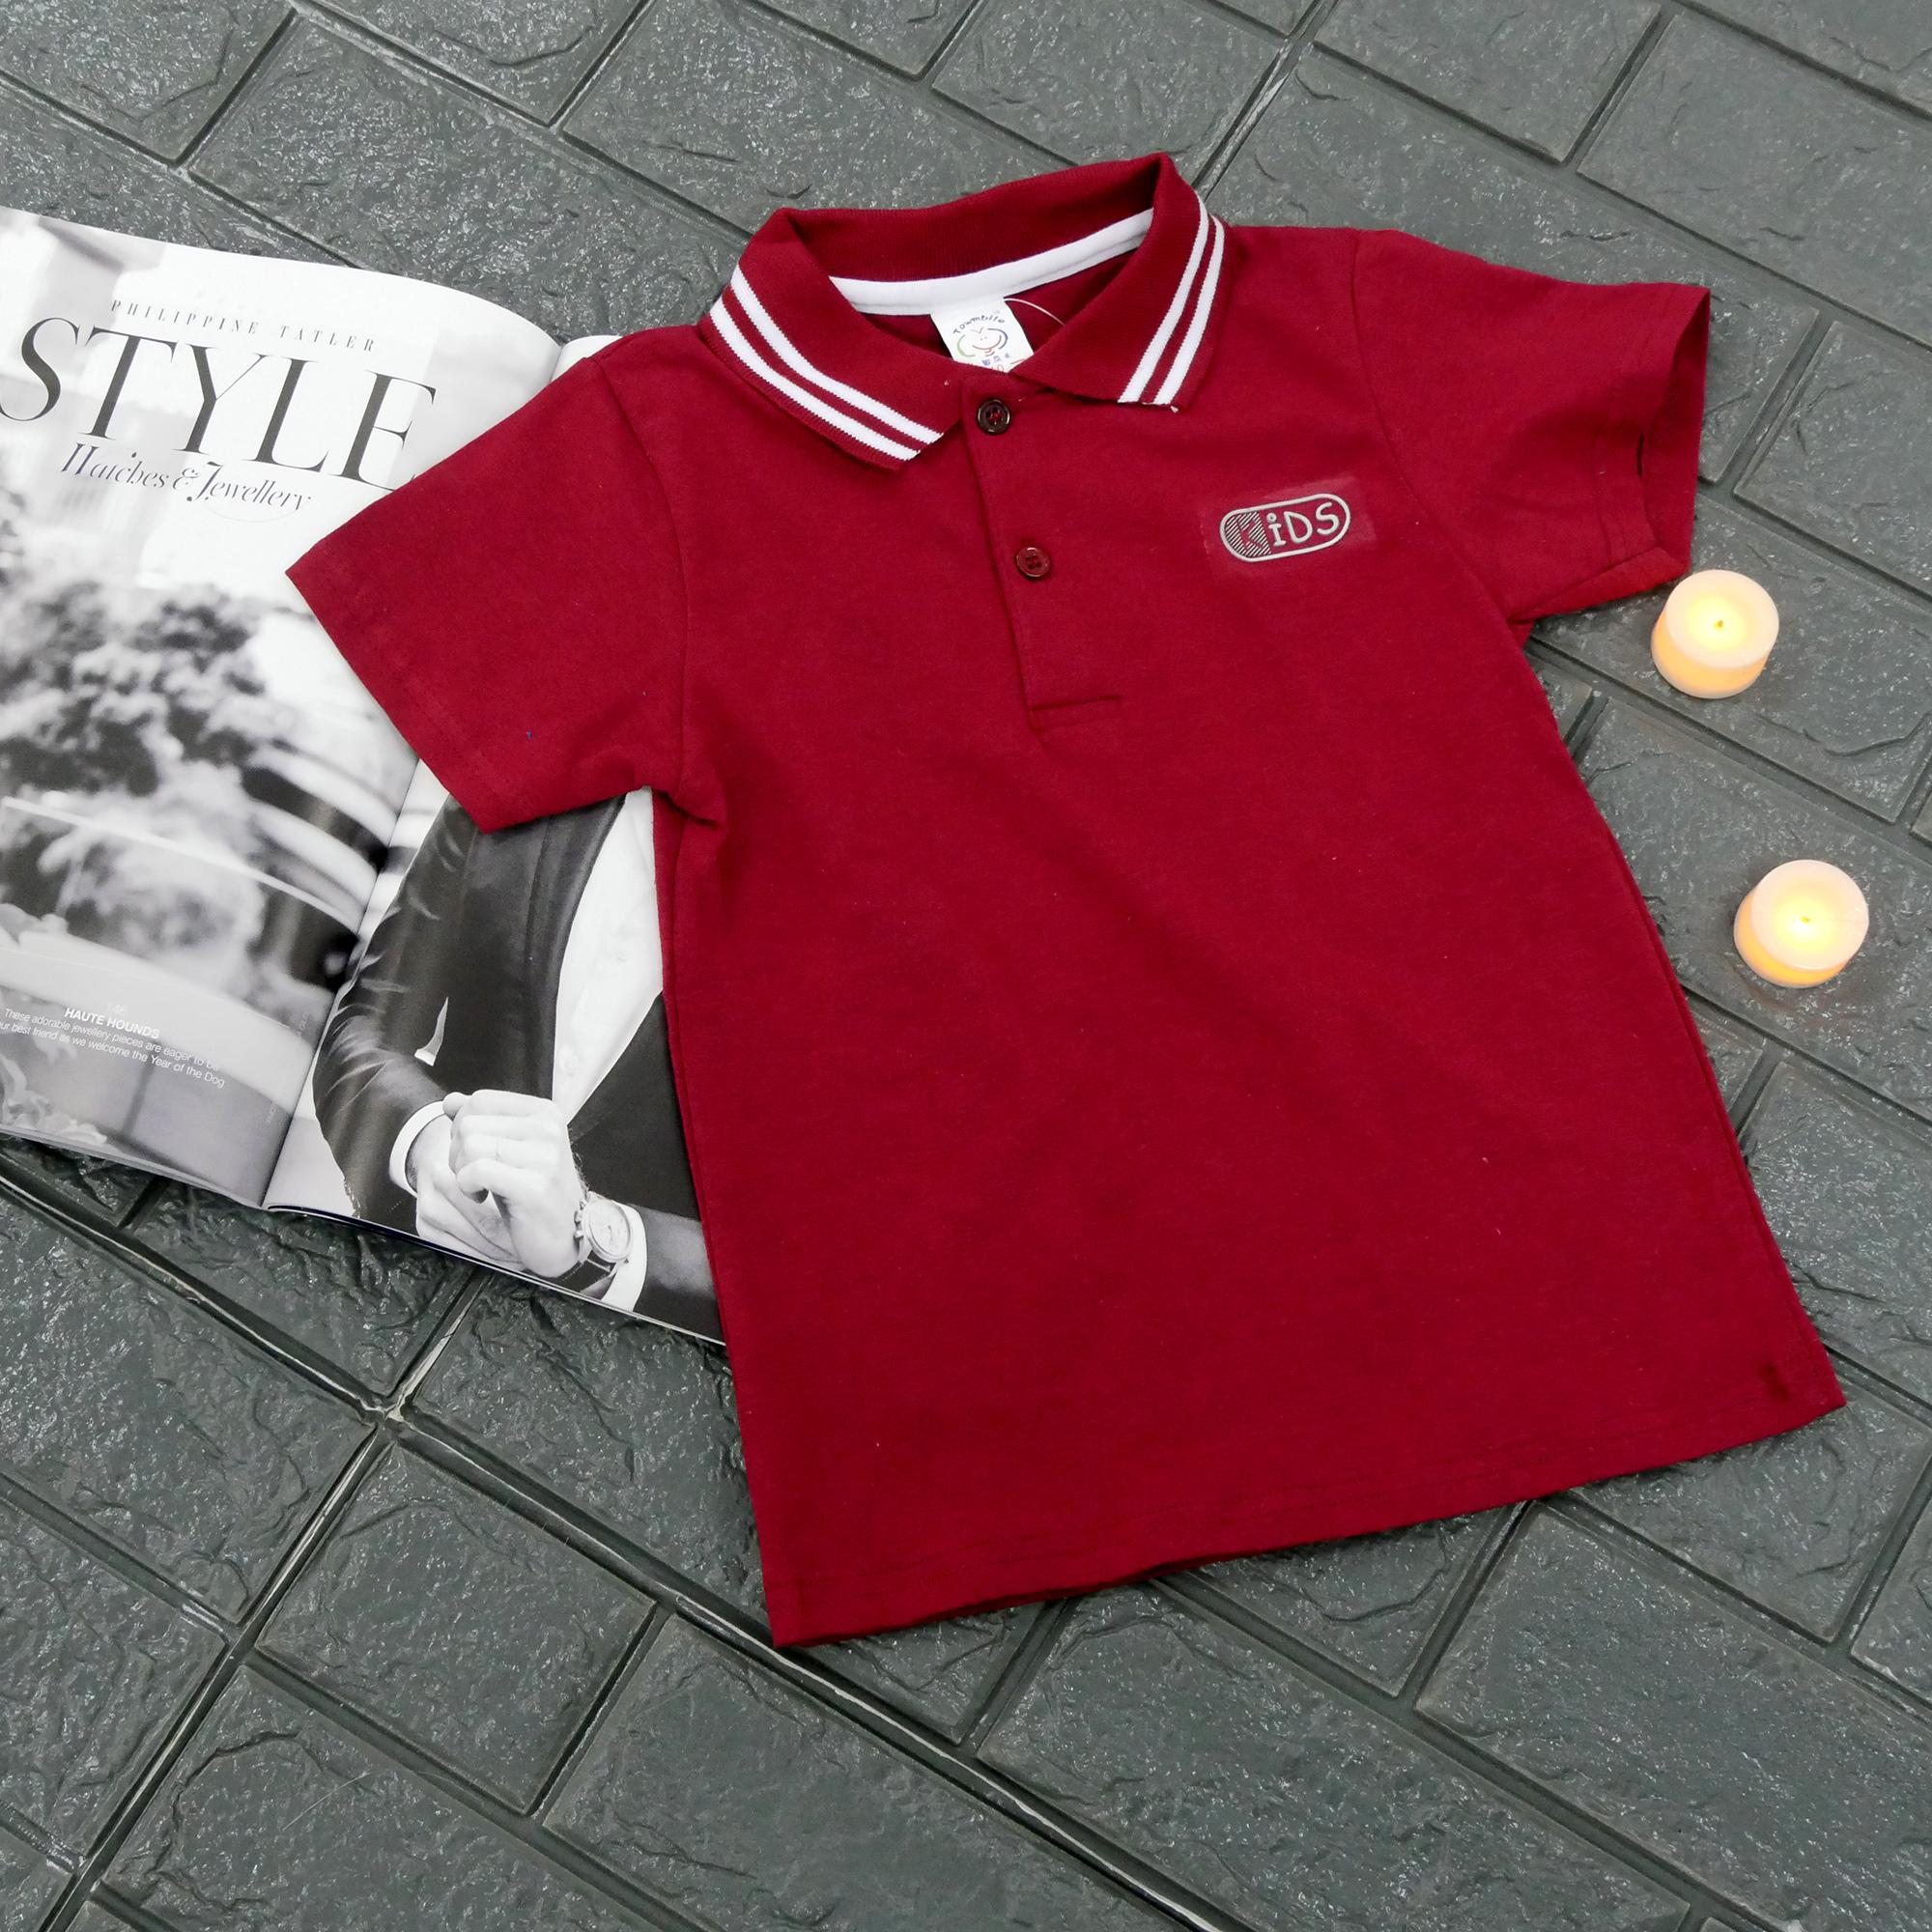 Izod Polo Shirts Price Philippines Chad Crowley Productions